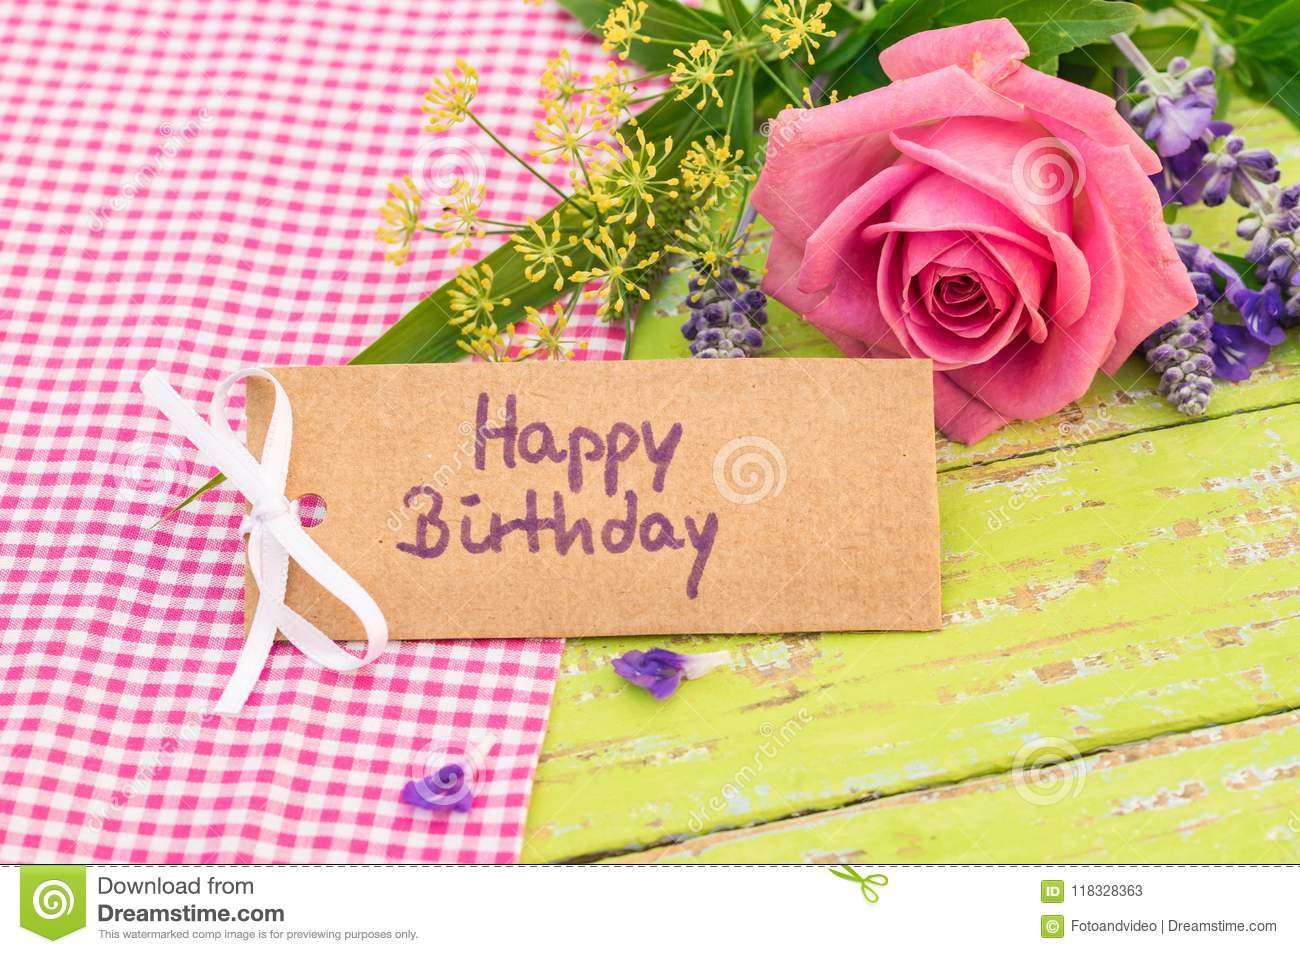 Greeting card happy birthday with rose flower bouquet stock image download greeting card happy birthday with rose flower bouquet stock image image of congratulations izmirmasajfo